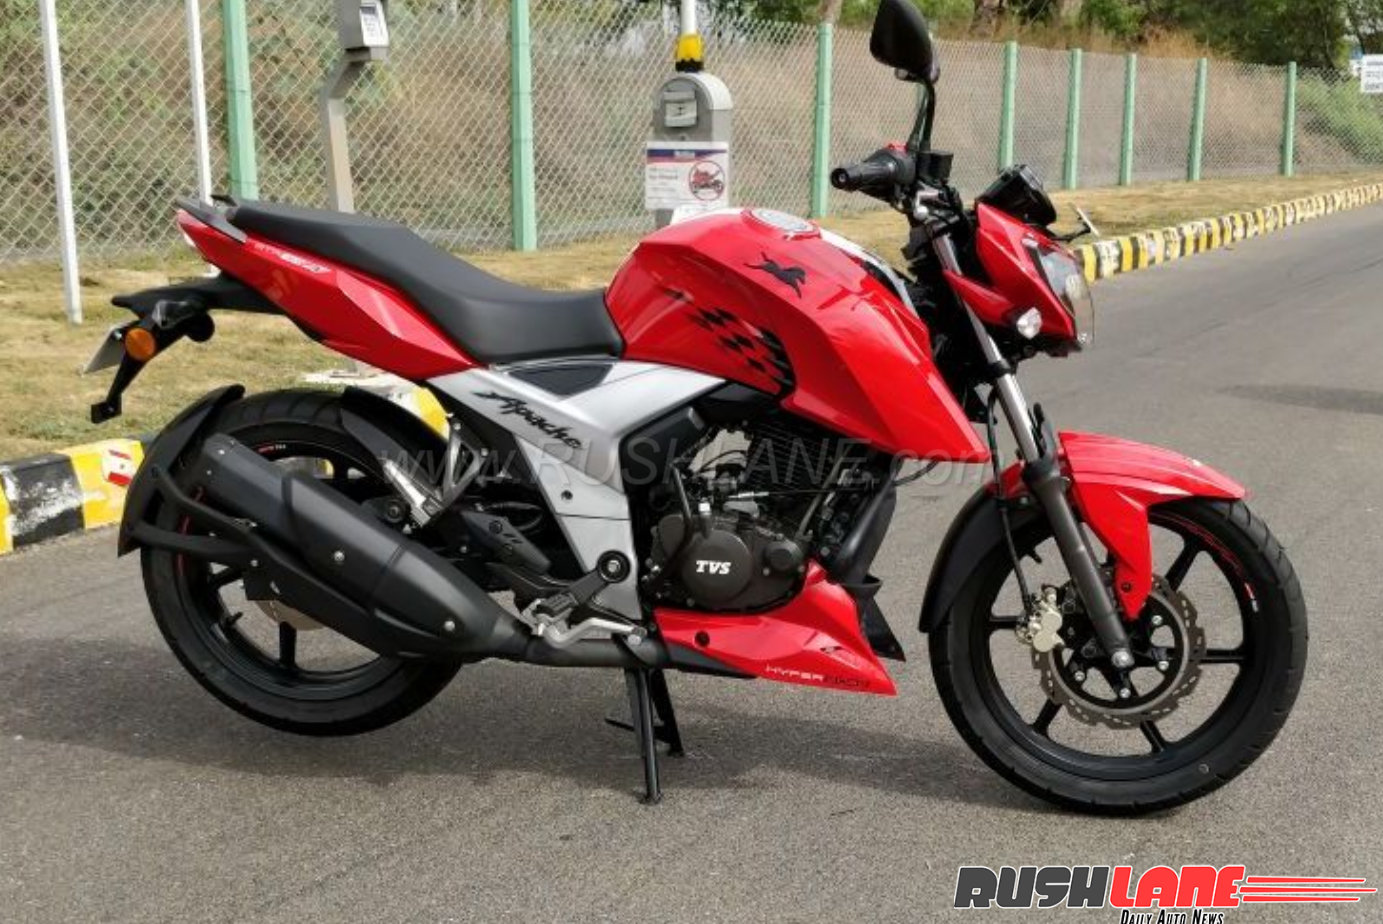 new tvs apache 160 review does it have enough to be the best